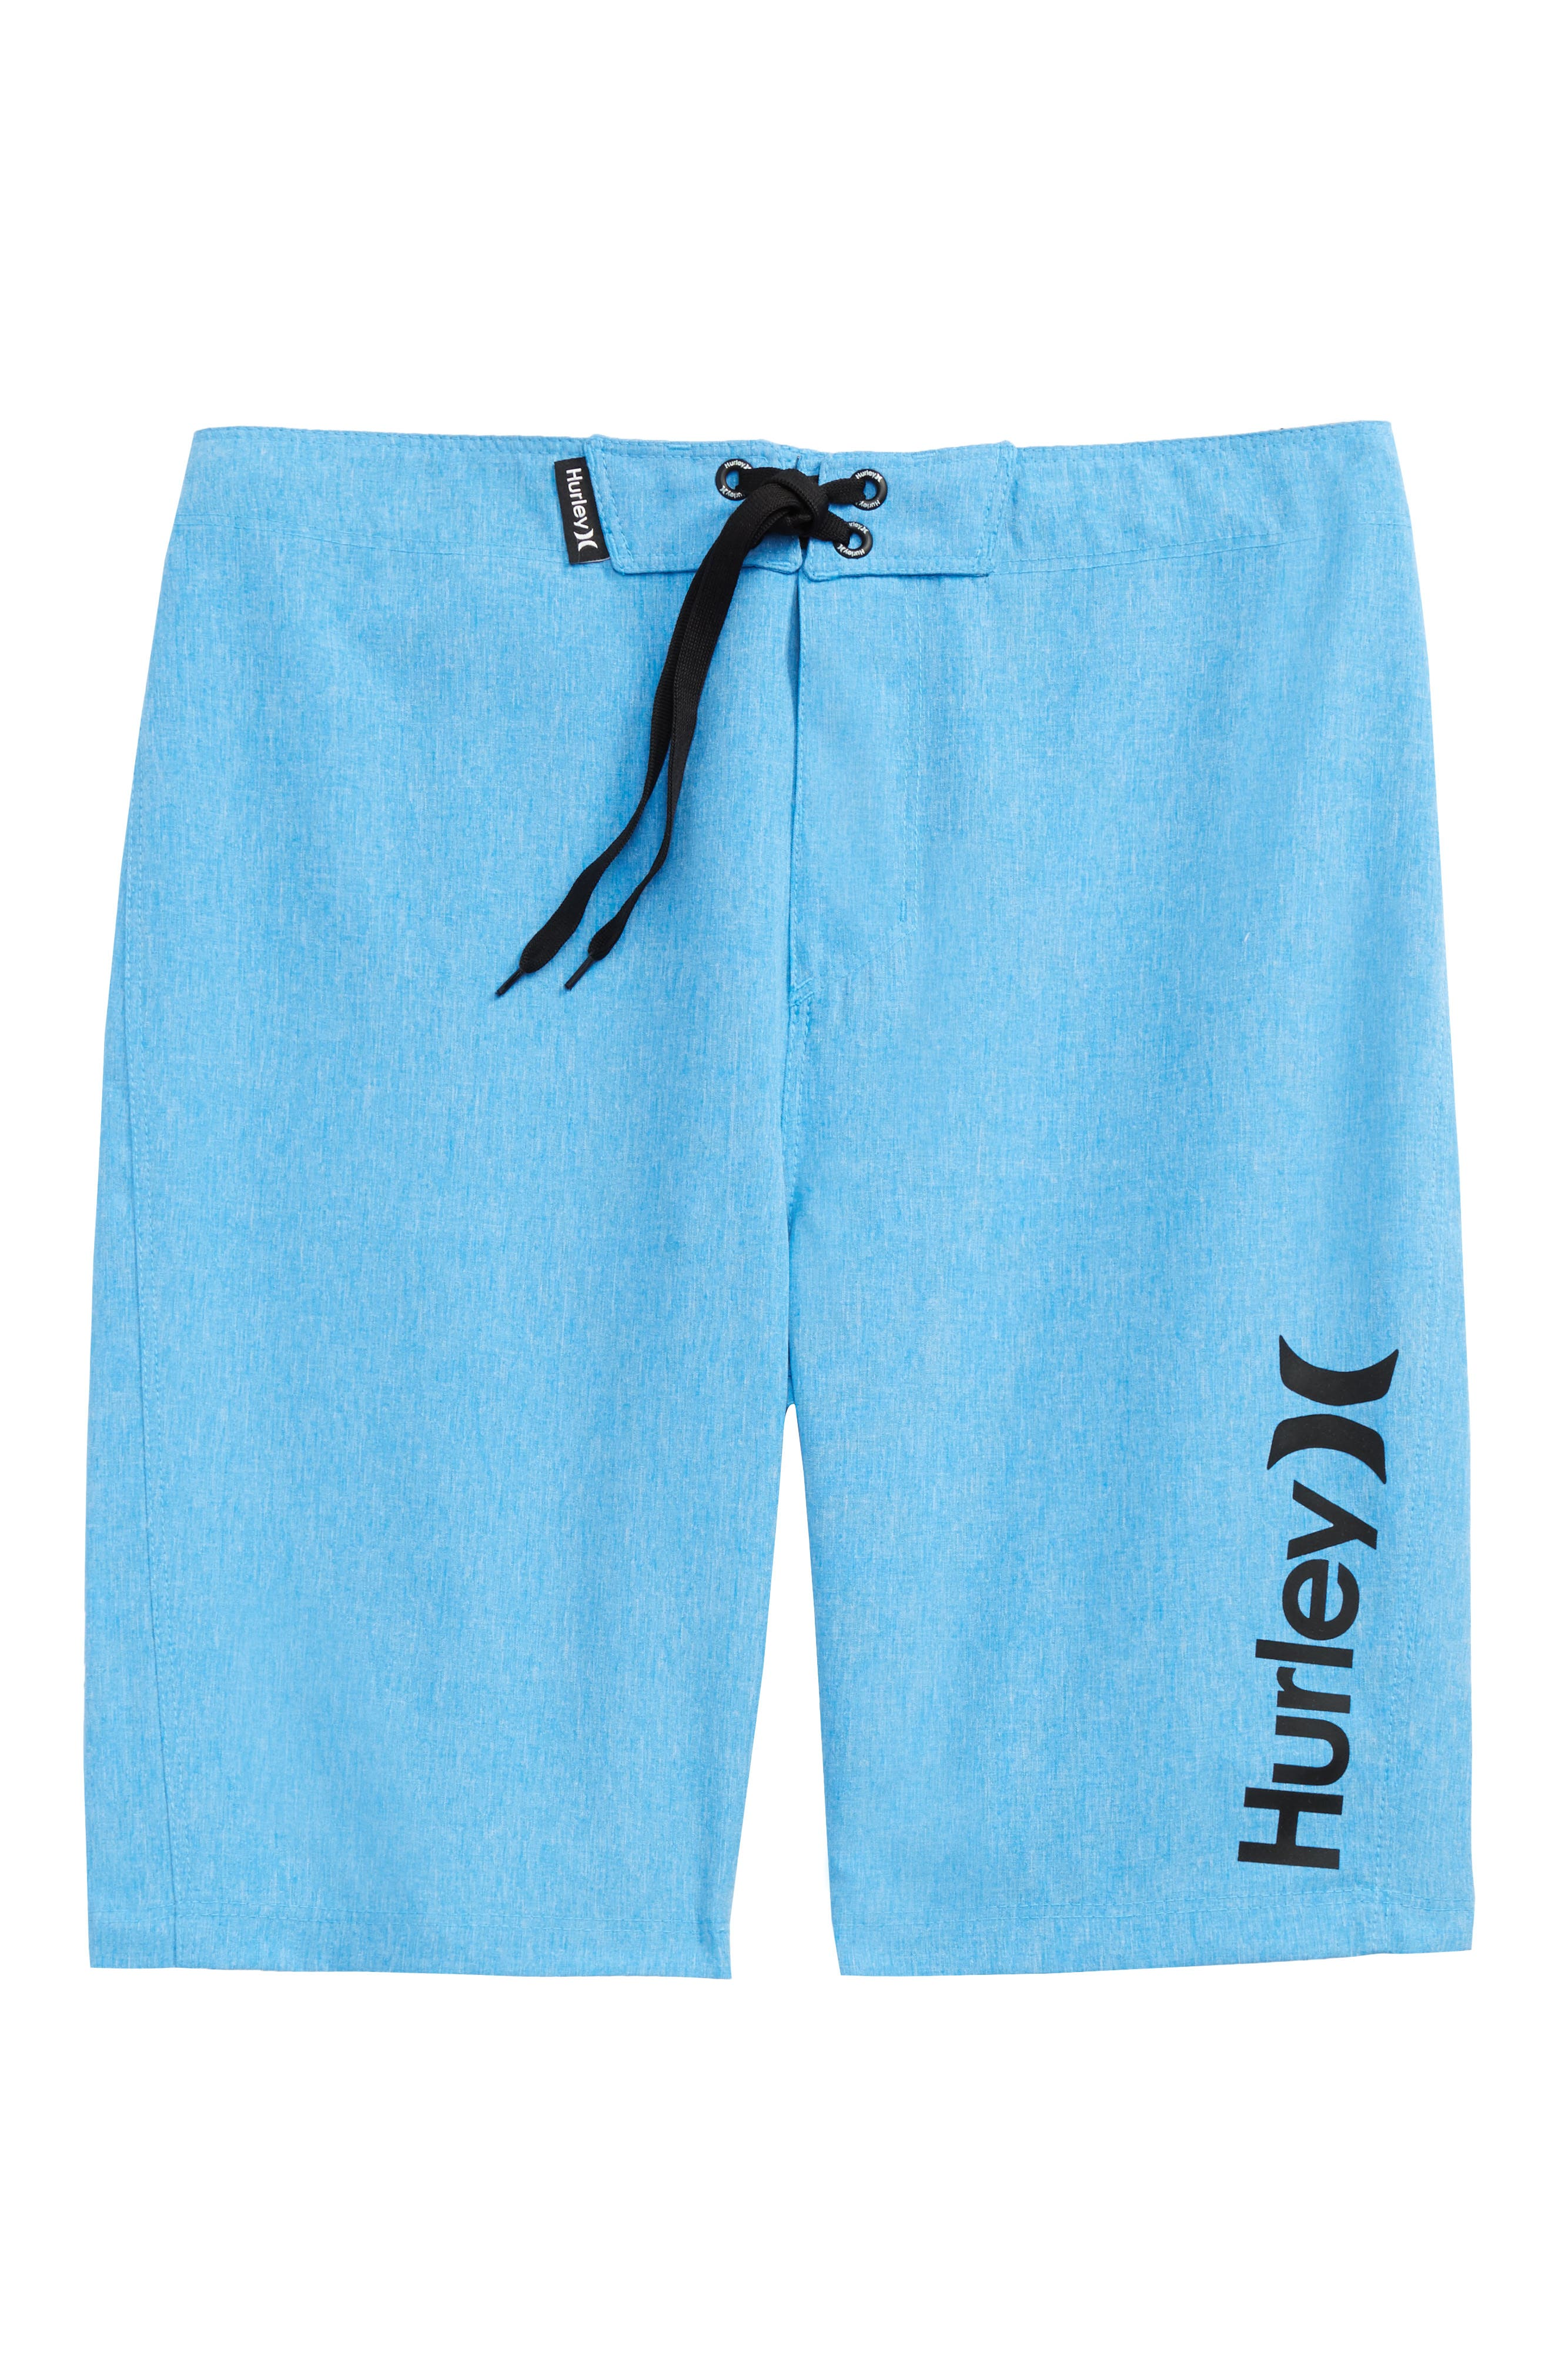 Main Image - Hurley One and Only Dri-FIT Board Shorts (Big Boys)